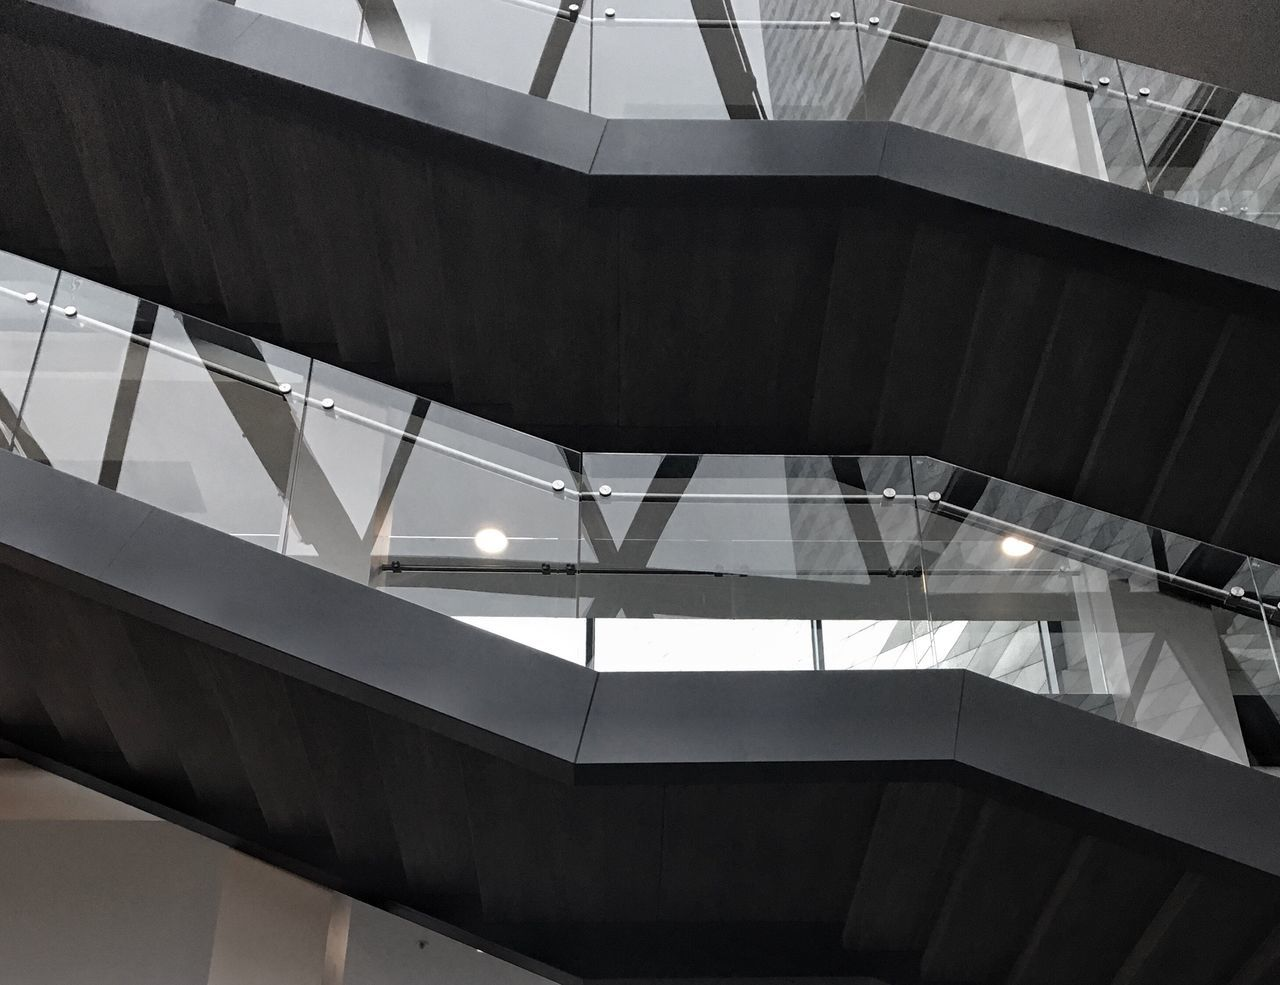 Built Structure Architecture Modern Interior Design Interior Low Angle View Indoors  No People Stairways Day Elevated Walkway Bank Building Built Structures Design Staircase Lines And Shapes Lines Lines&Design Office Building Modern Building Black Reflections Geometry Glass